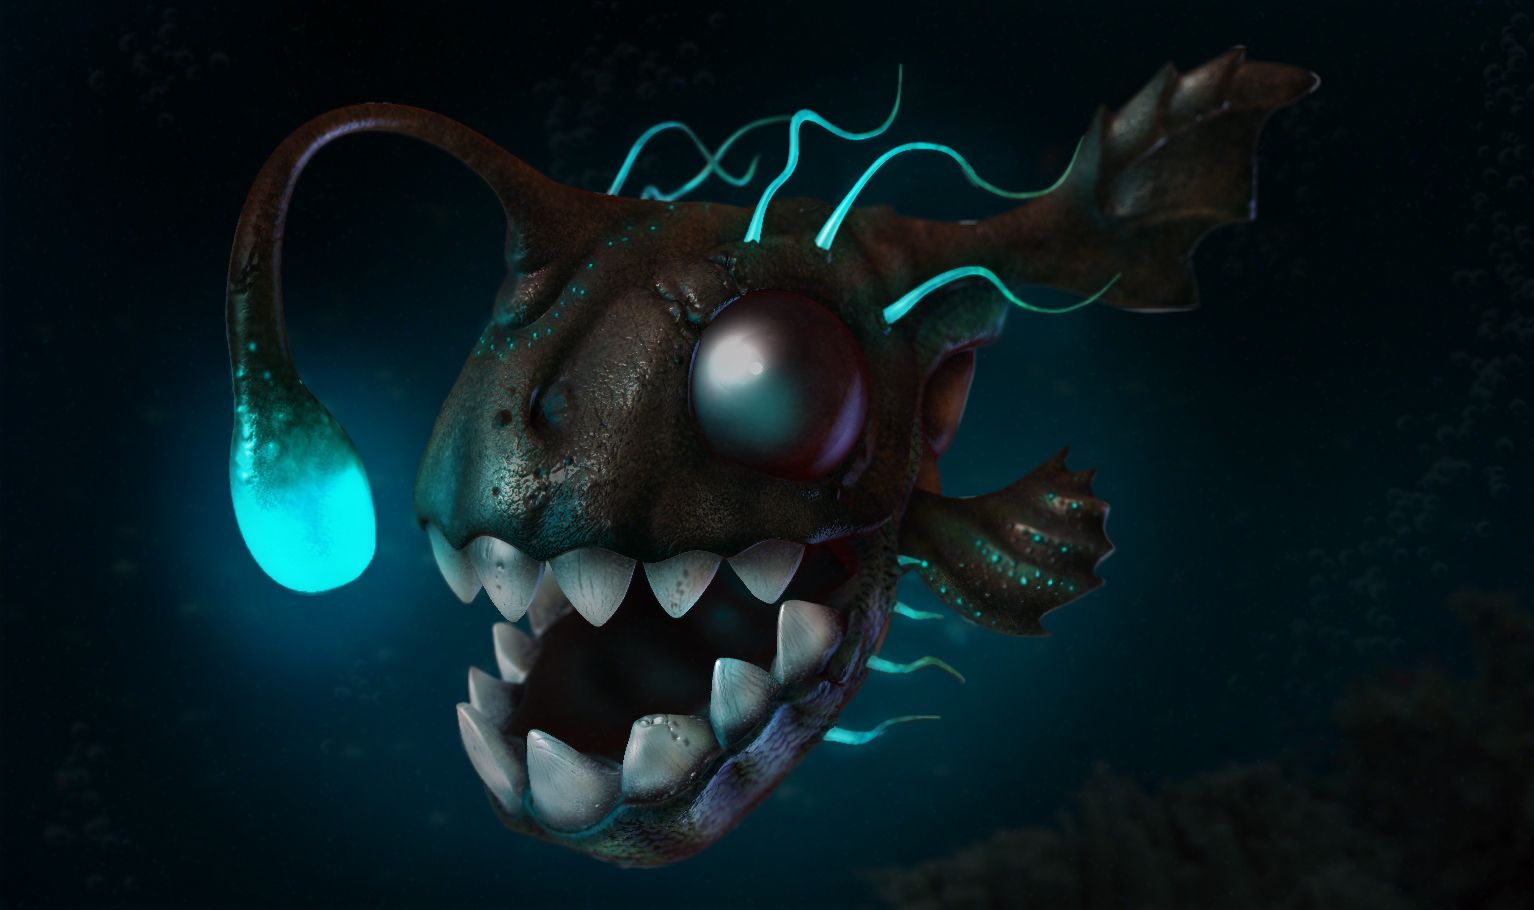 Deep Sea Fish by JoDaC on DeviantArt | Art | Pinterest | Deep sea ... for Cute Deep Sea Creatures  157uhy